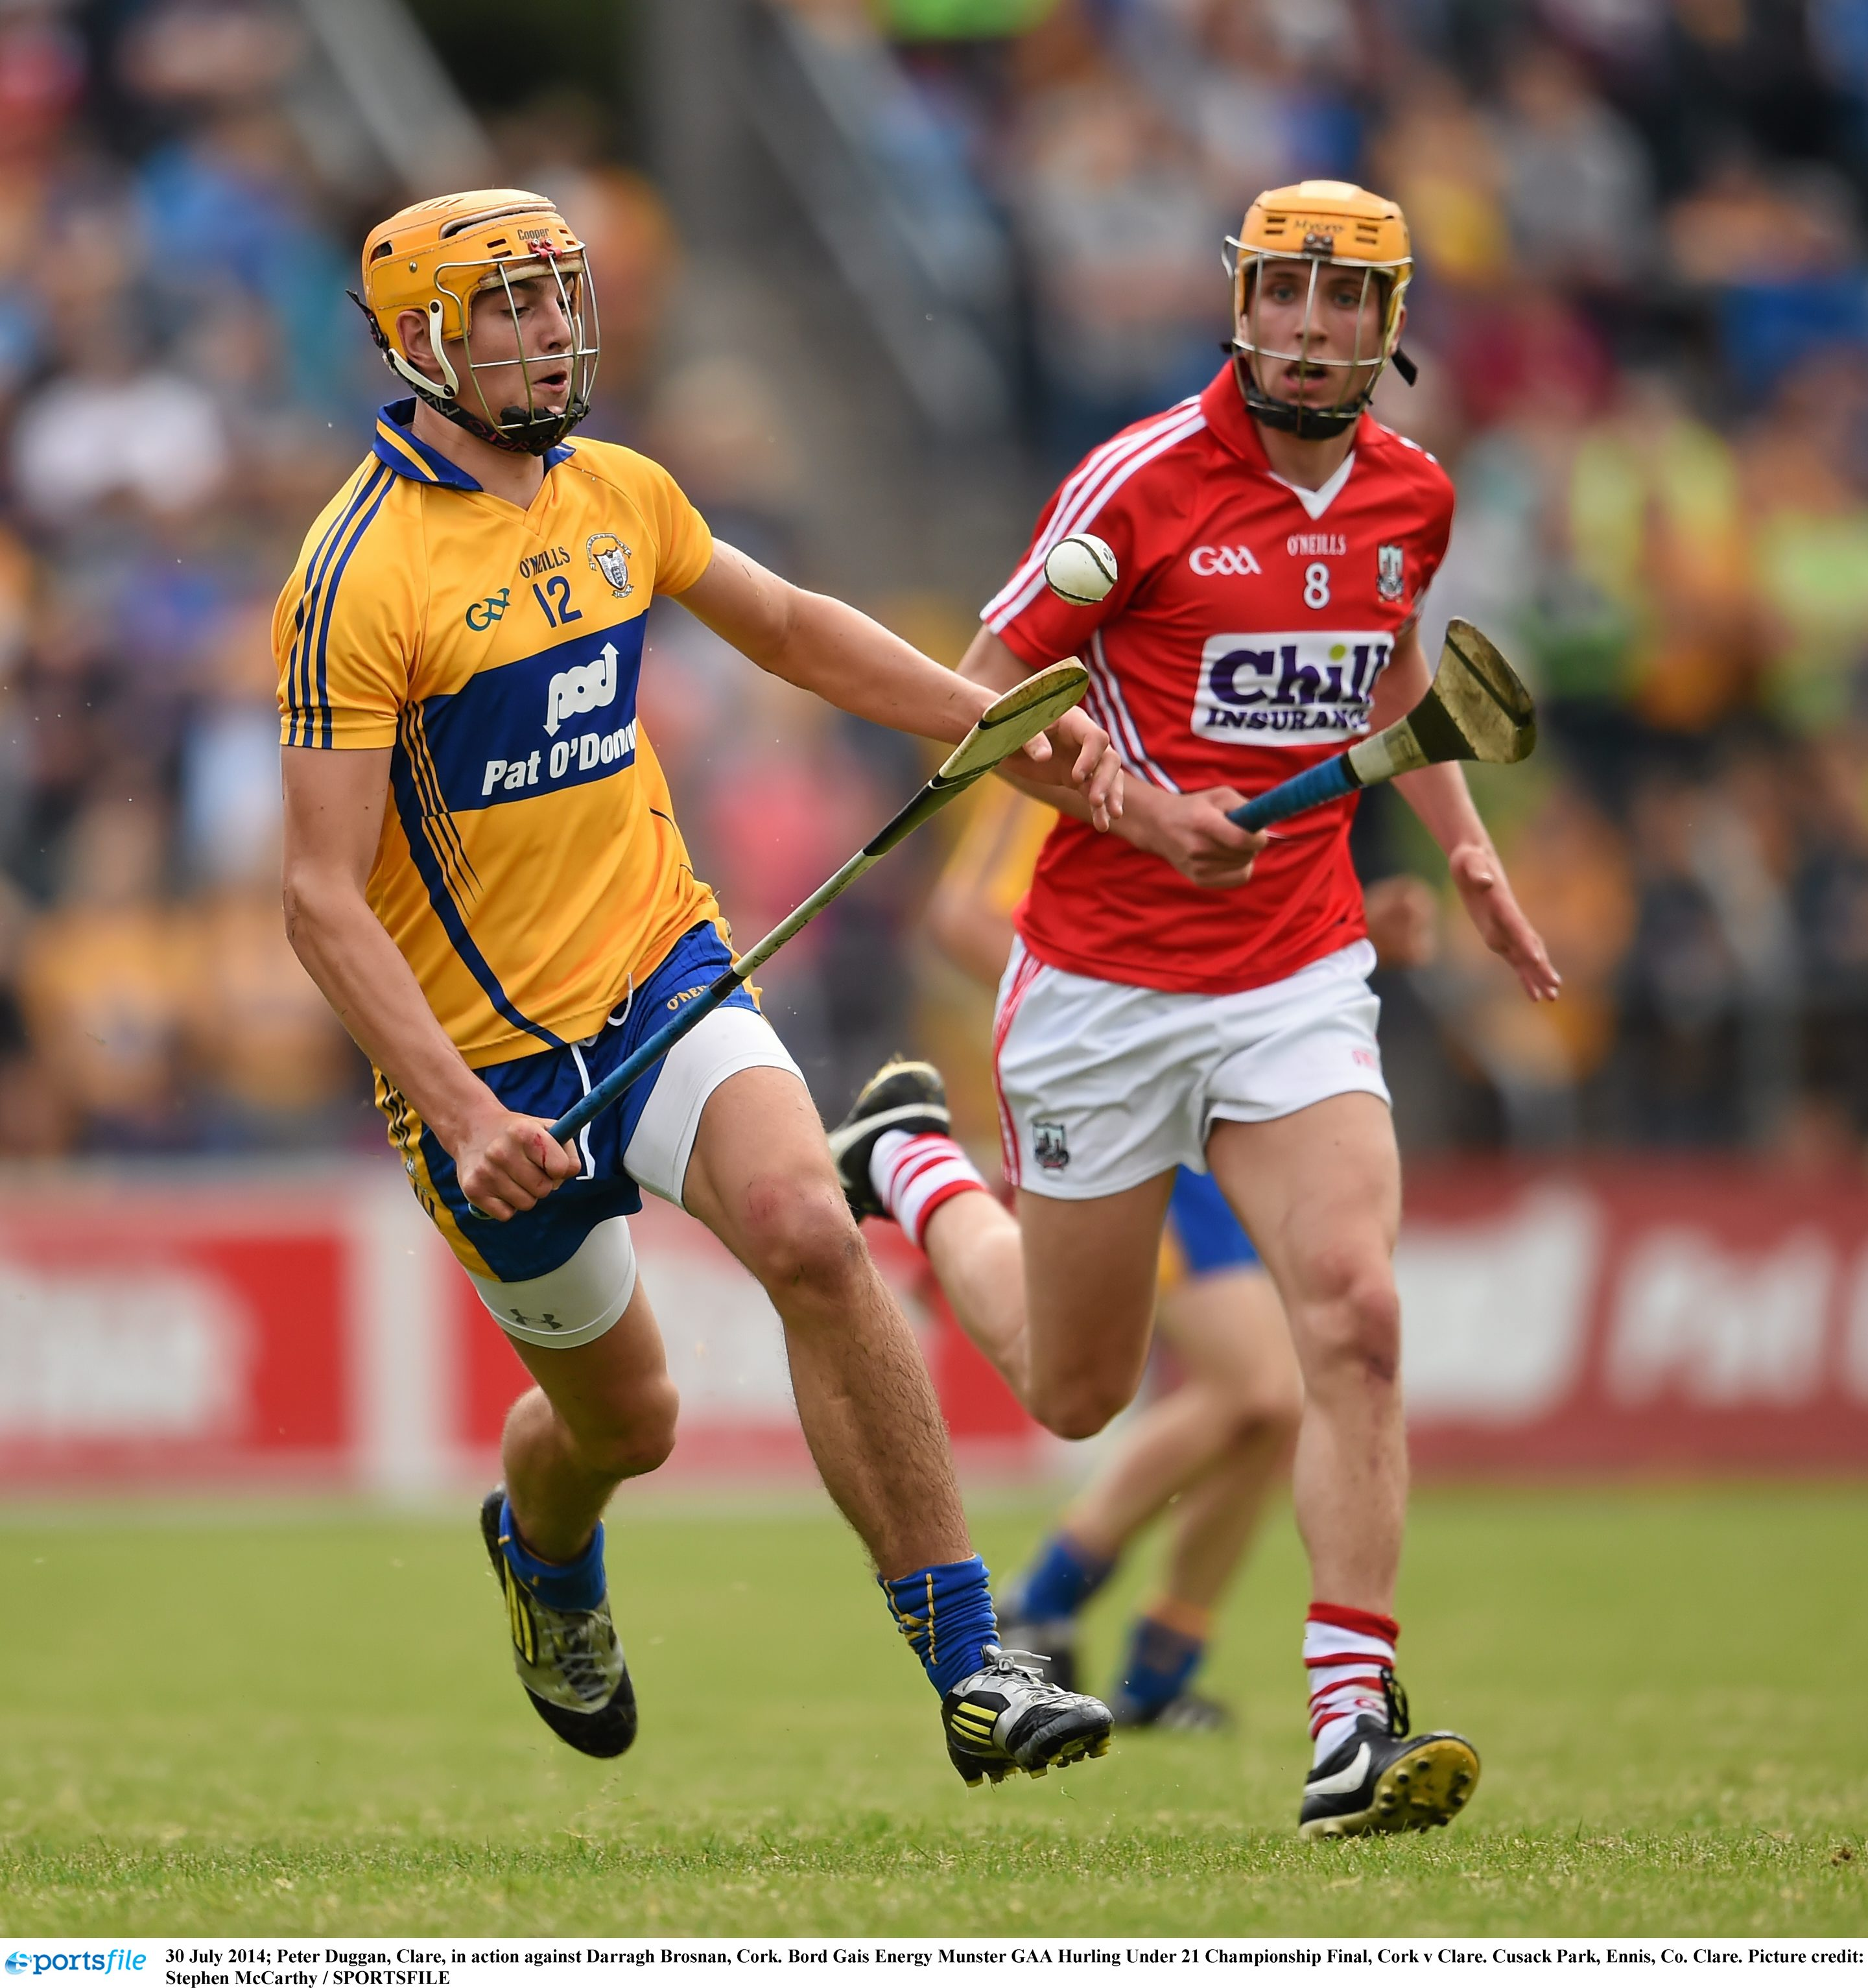 Peter Duggan, Clare, in action against Darragh Brosnan, Cork. Bord Gais Energy Munster GAA Hurling Under 21 Championship Final, Cork v Clare. Cusack Park, Ennis, Co. Clare. Picture credit: Stephen McCarthy / SPORTSFILE